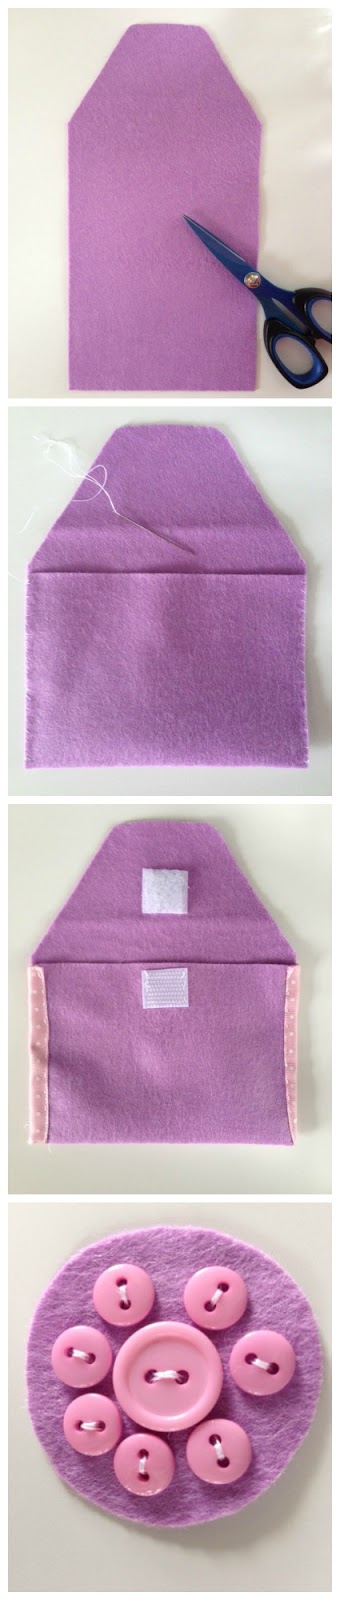 How to make a felt and ribbon purse for small treasures for a child